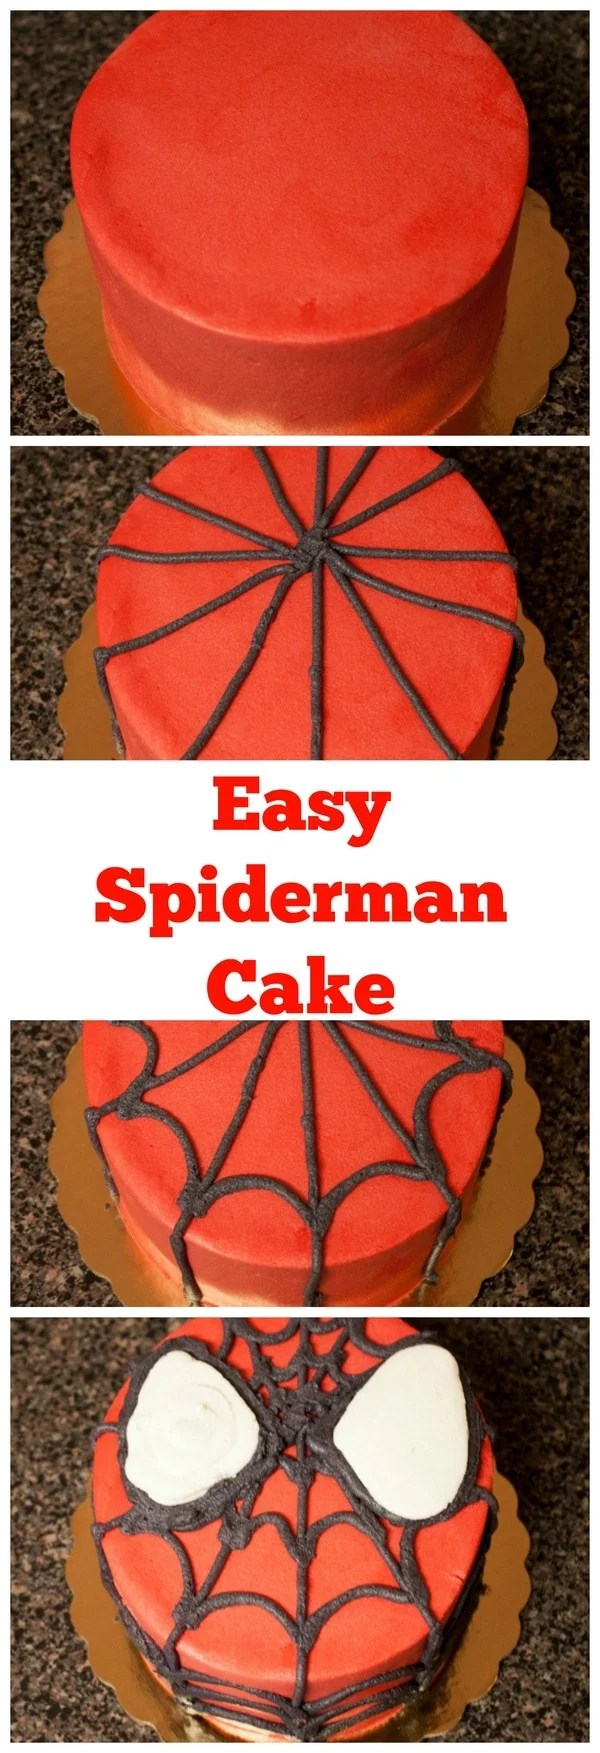 Diy Spiderman Cake With Homemade Cake And Frosting